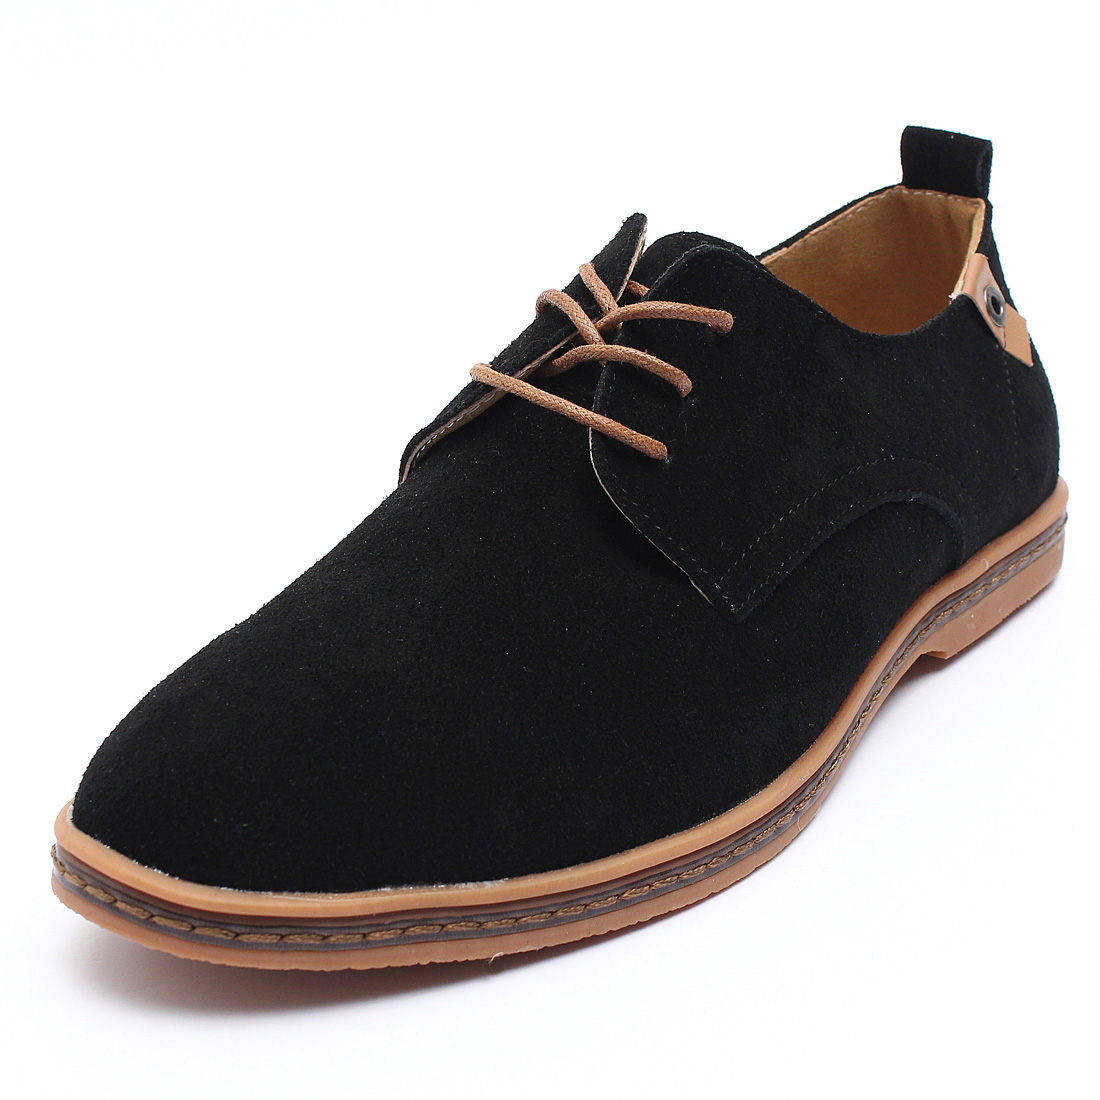 2016 suede european style leather shoes s oxfords